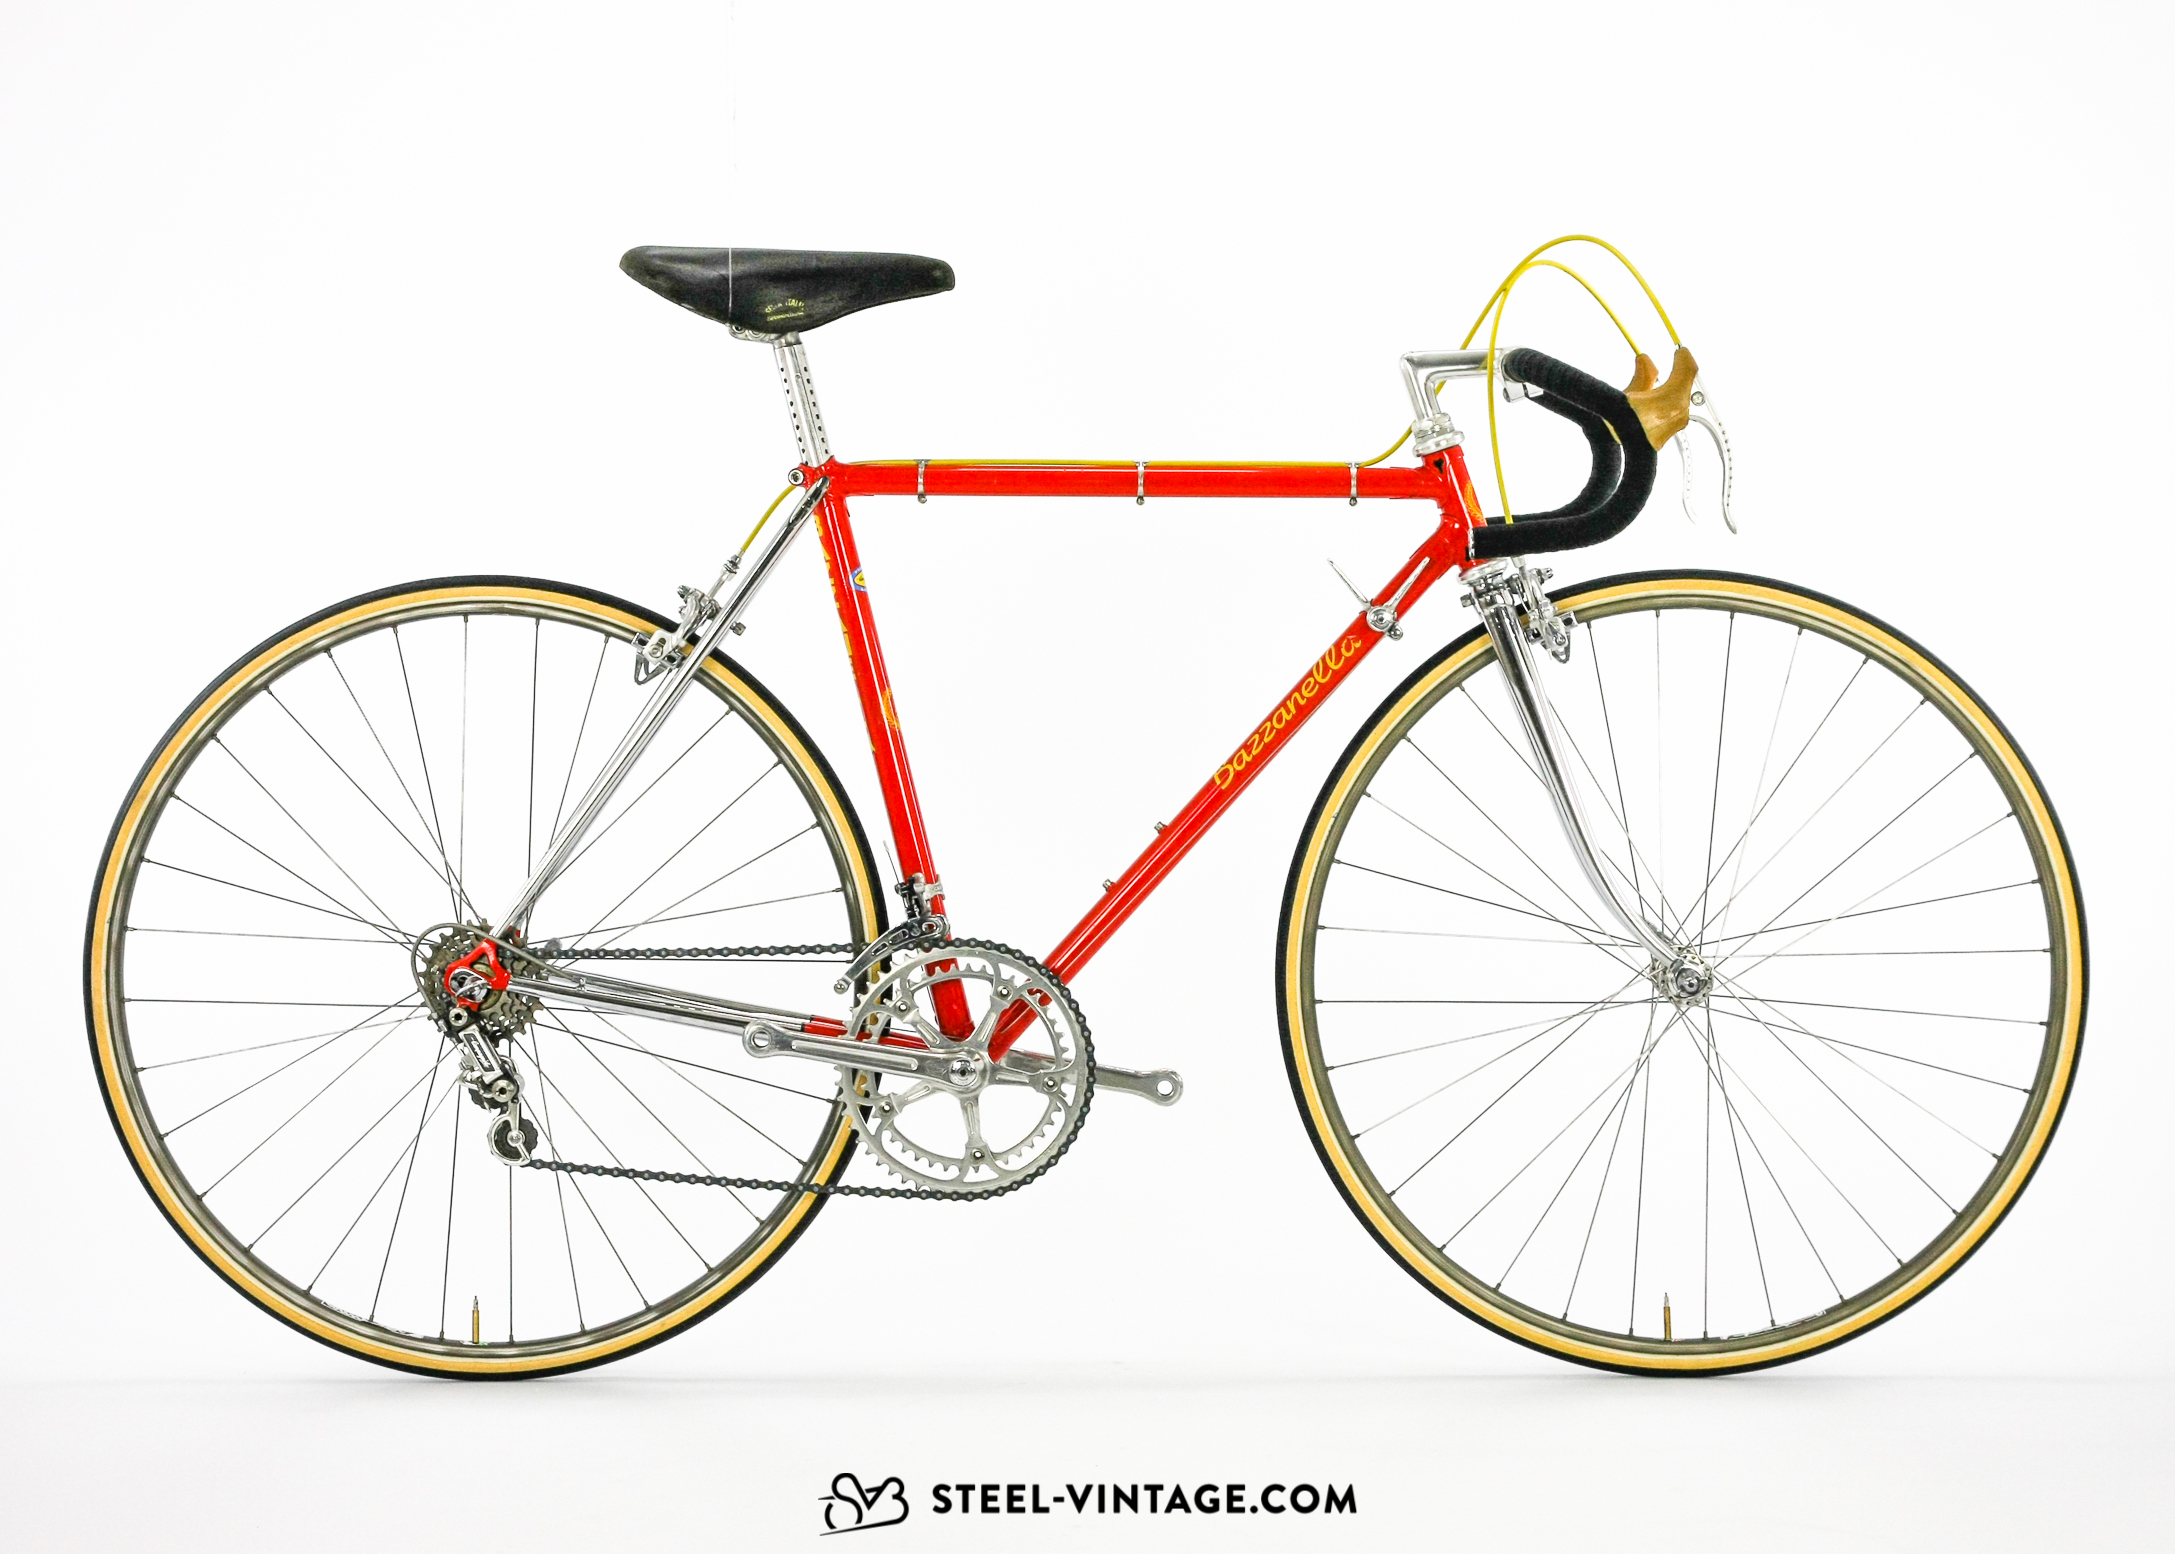 Bazzanella Super Record Classic Bicycle for Eroica